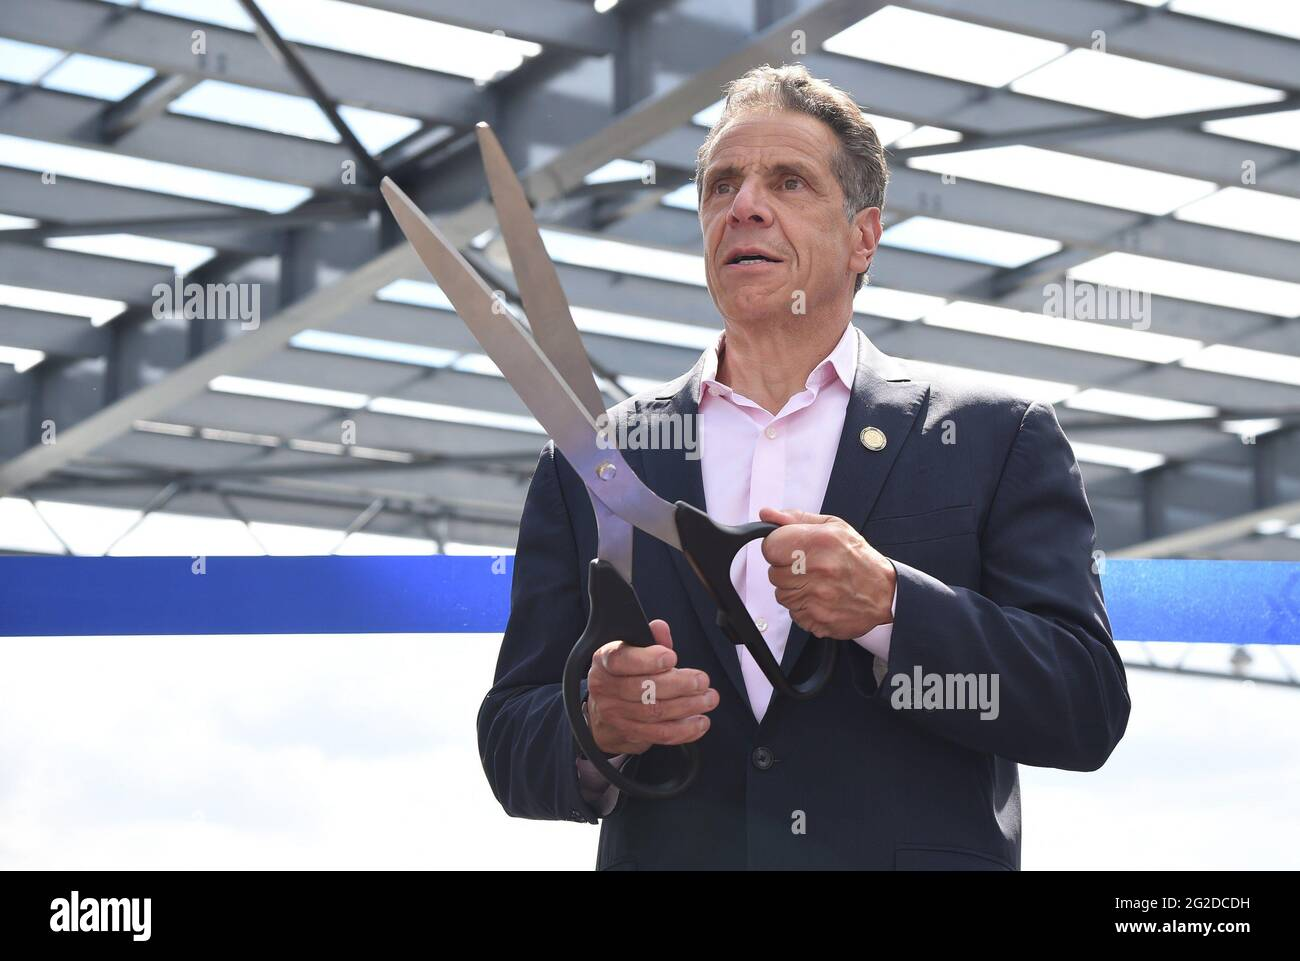 New York, NY, USA. 9th June, 2021. Andrew Cuomo at a public appearance for Governor Andrew M. Cuomo Ribbon Cutting at Grand Opening of Pier 76, behind the Javits Center, New York, NY June 9, 2021. Credit: Kristin Callahan/Everett Collection/Alamy Live News Stock Photo